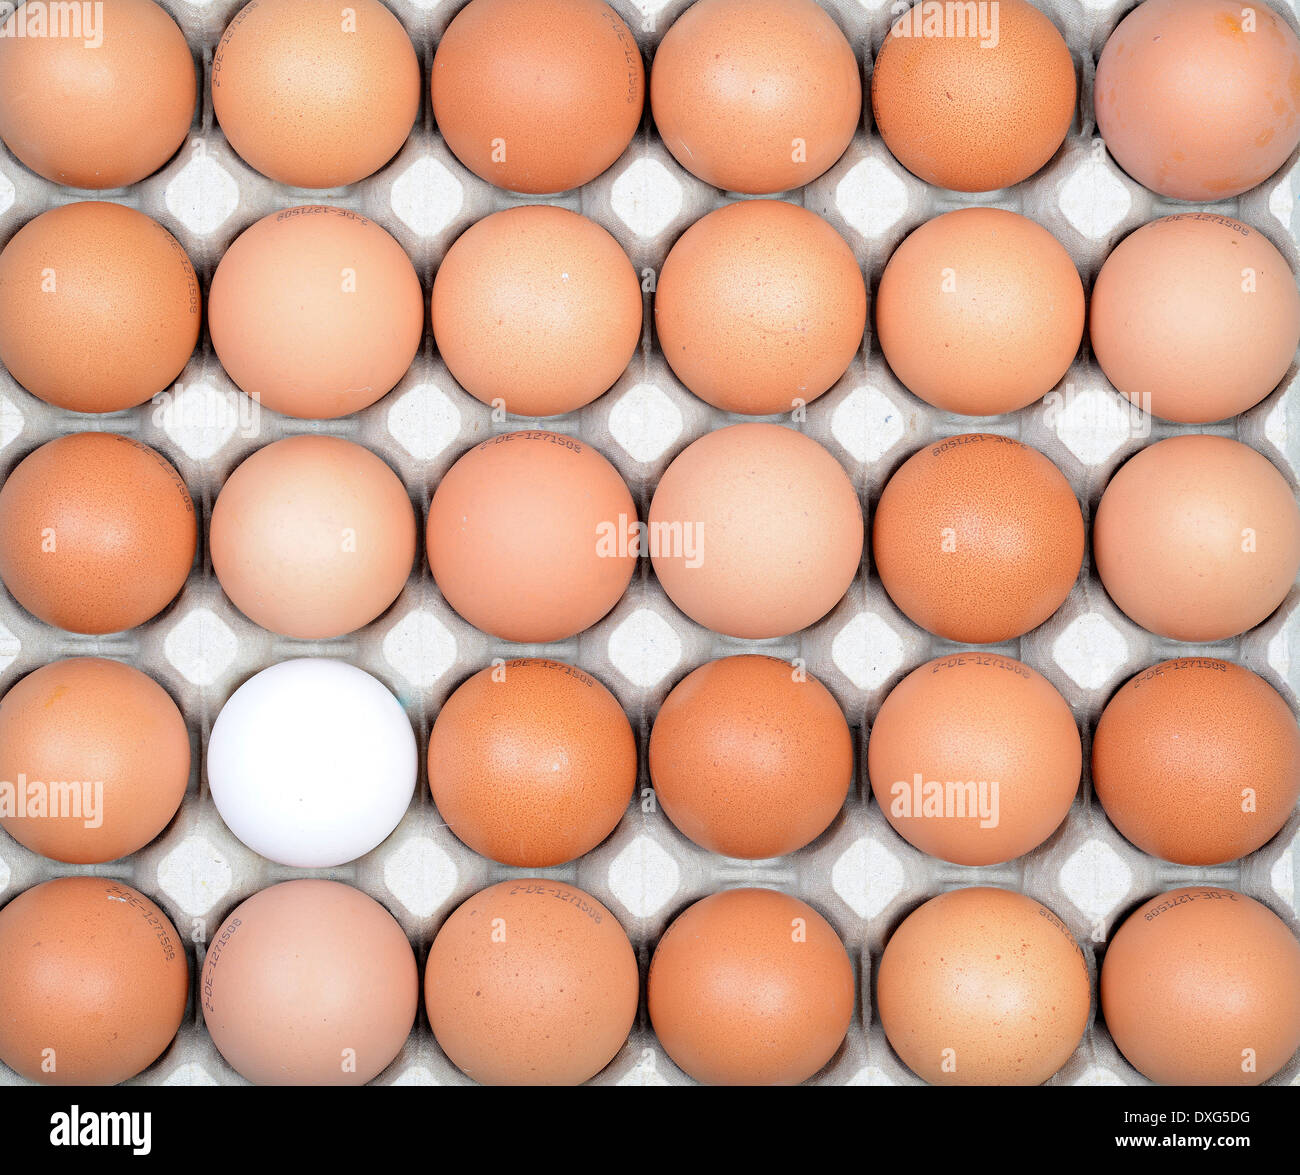 Hen's eggs, brown and white - Stock Image